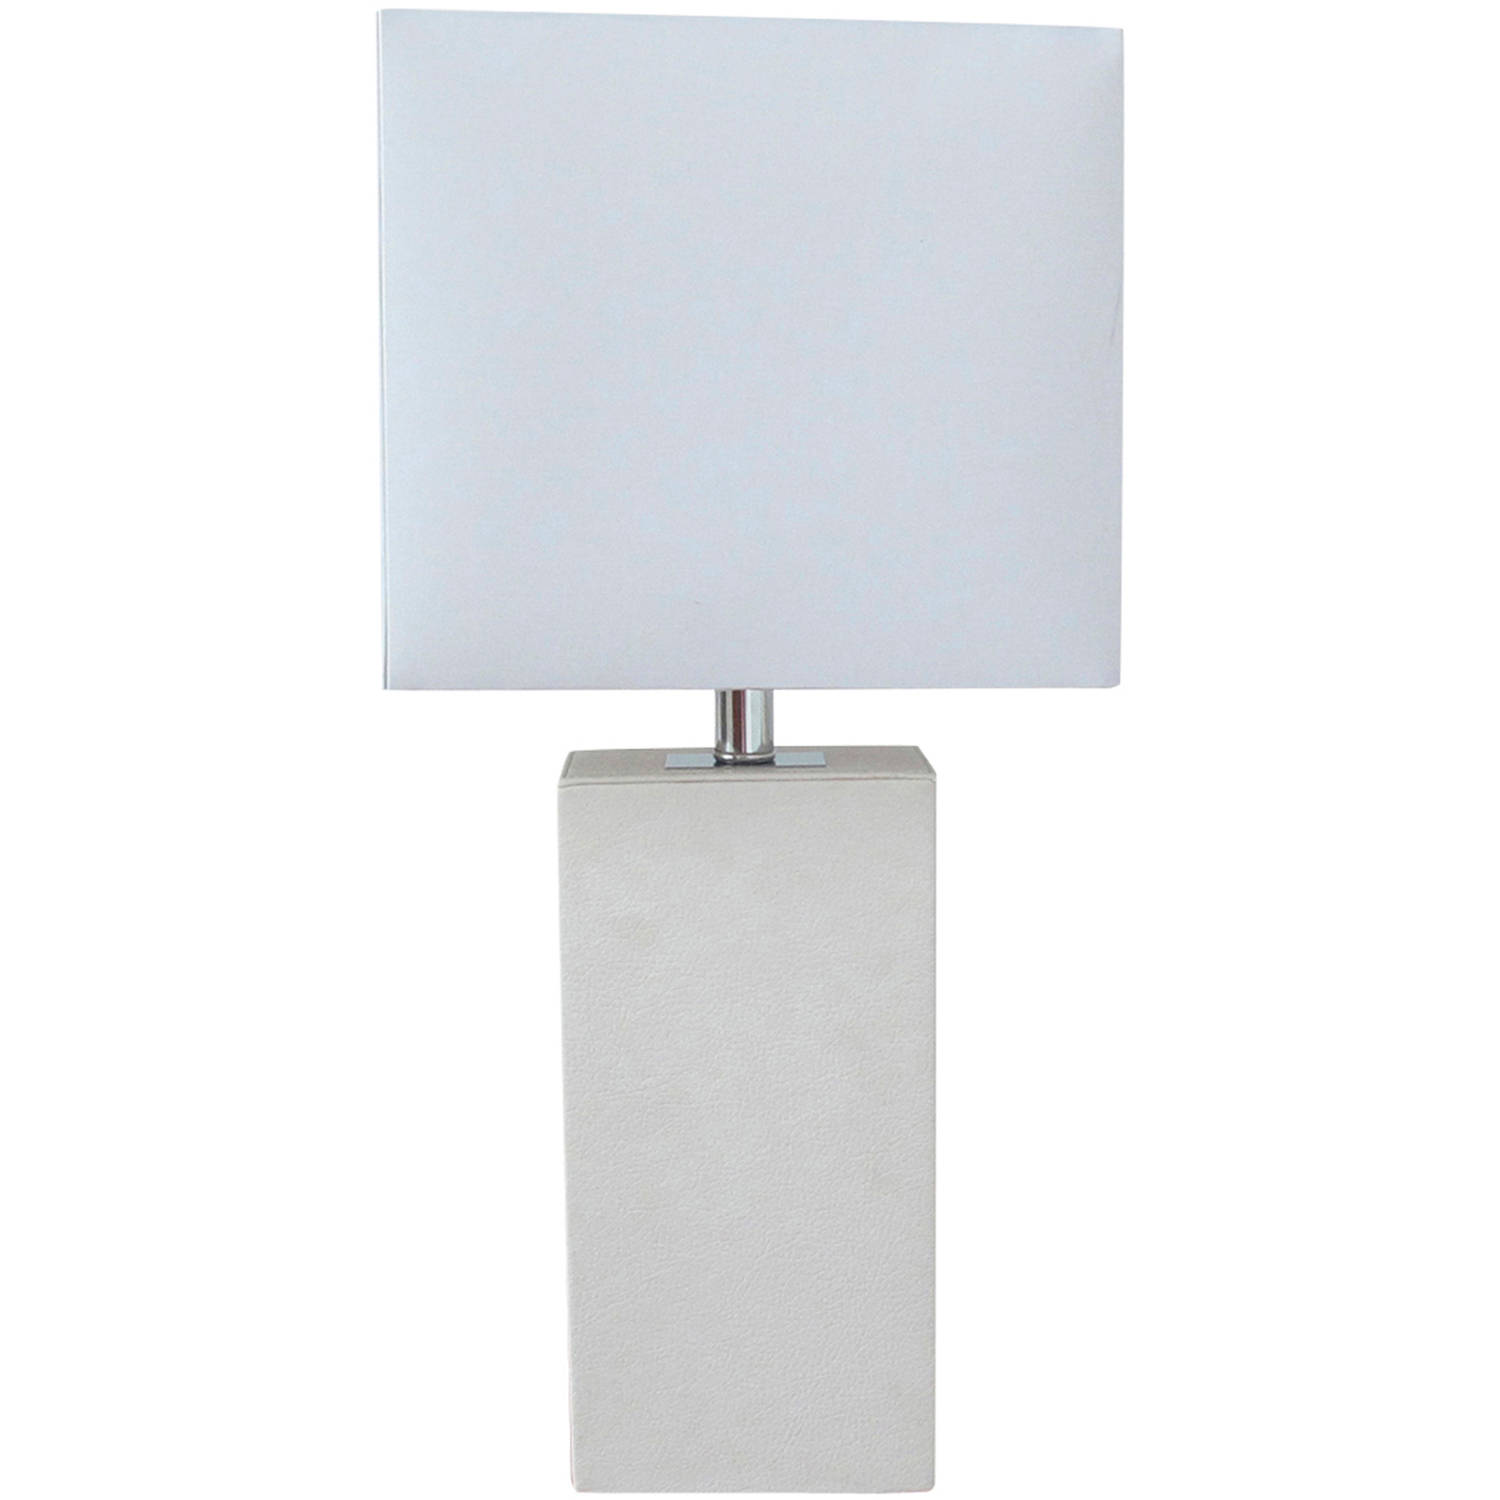 Elegant Designs Modern White Leather Table Lamp by All the Rages